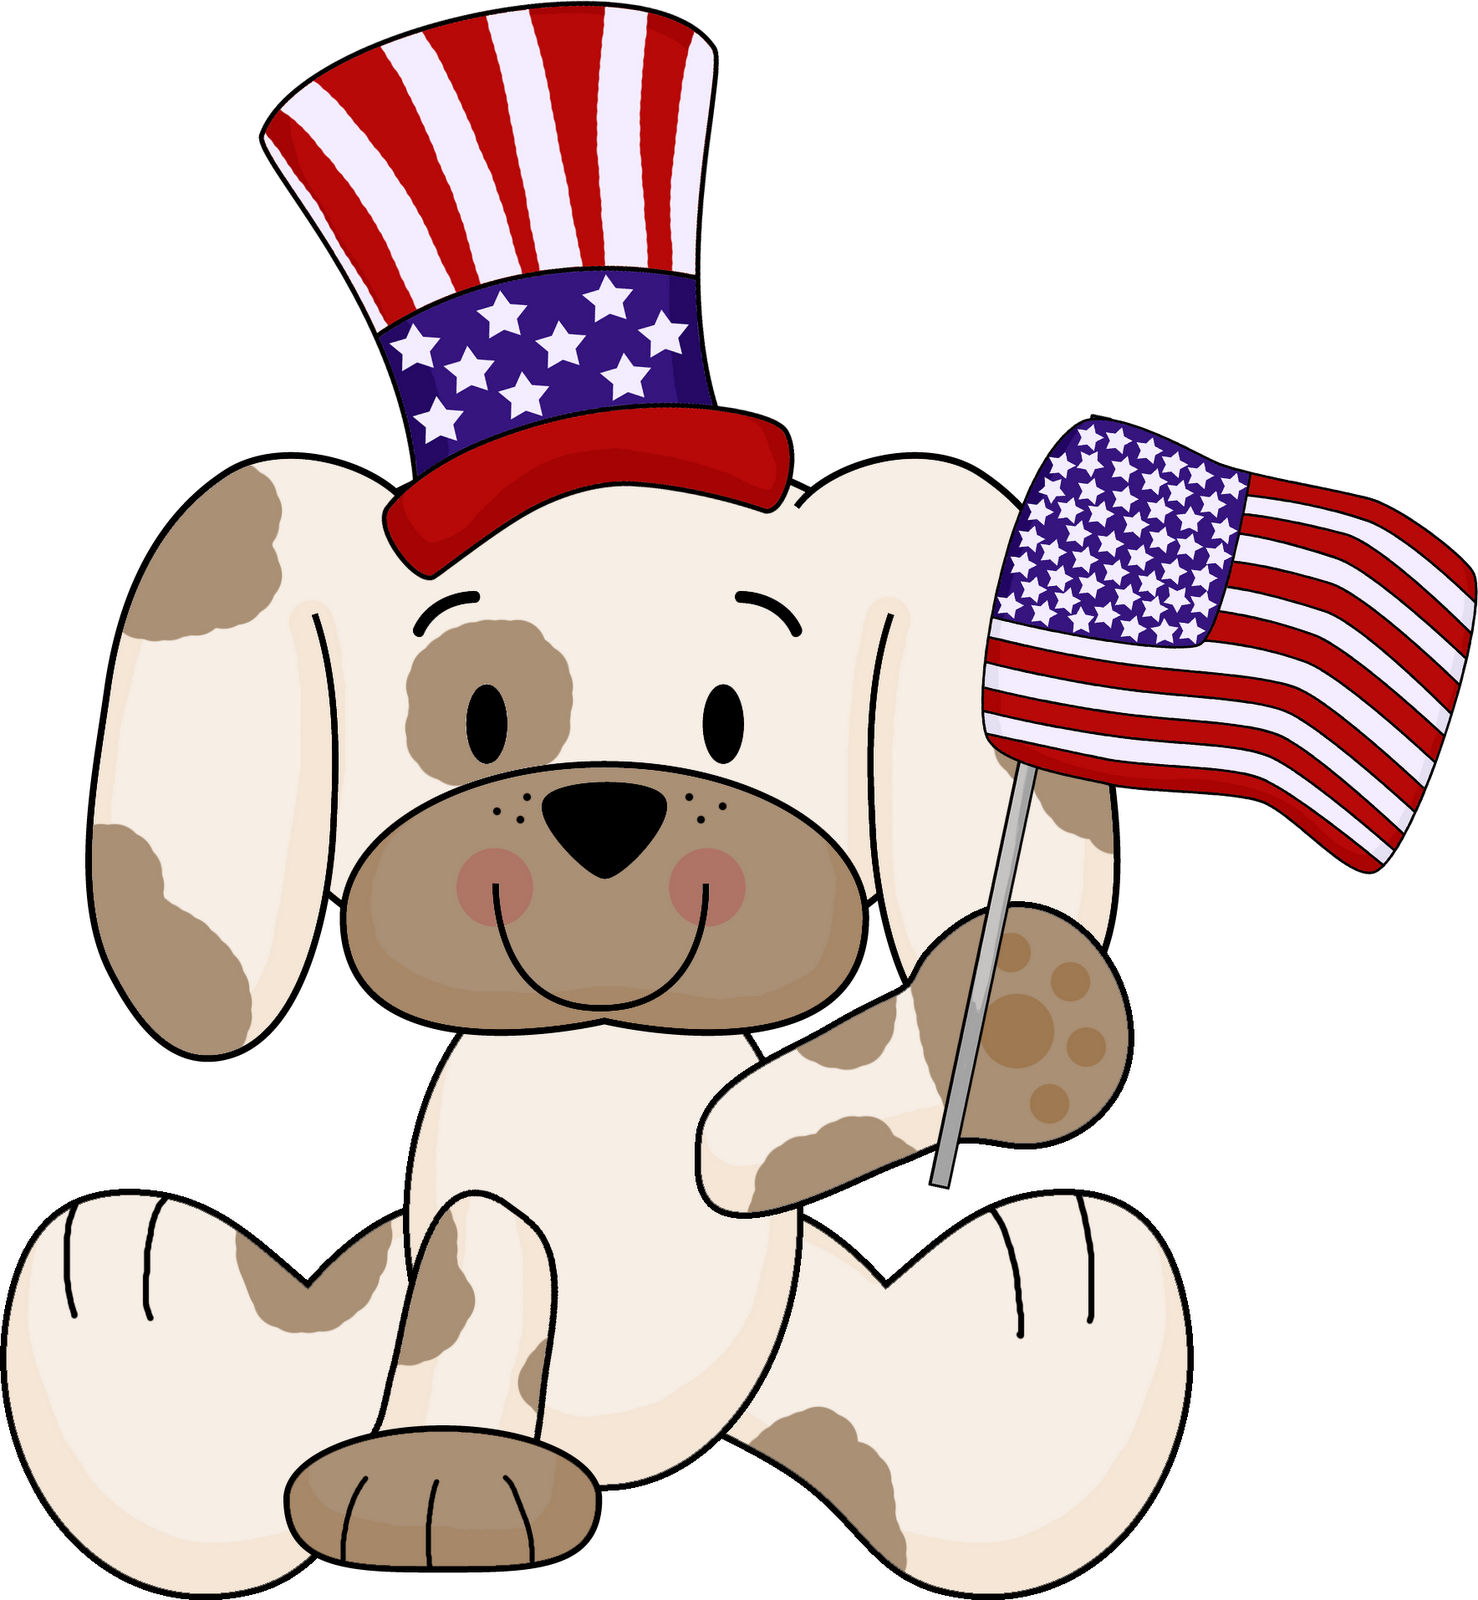 png transparent library Pictures free hd images. 2018 clipart memorial day